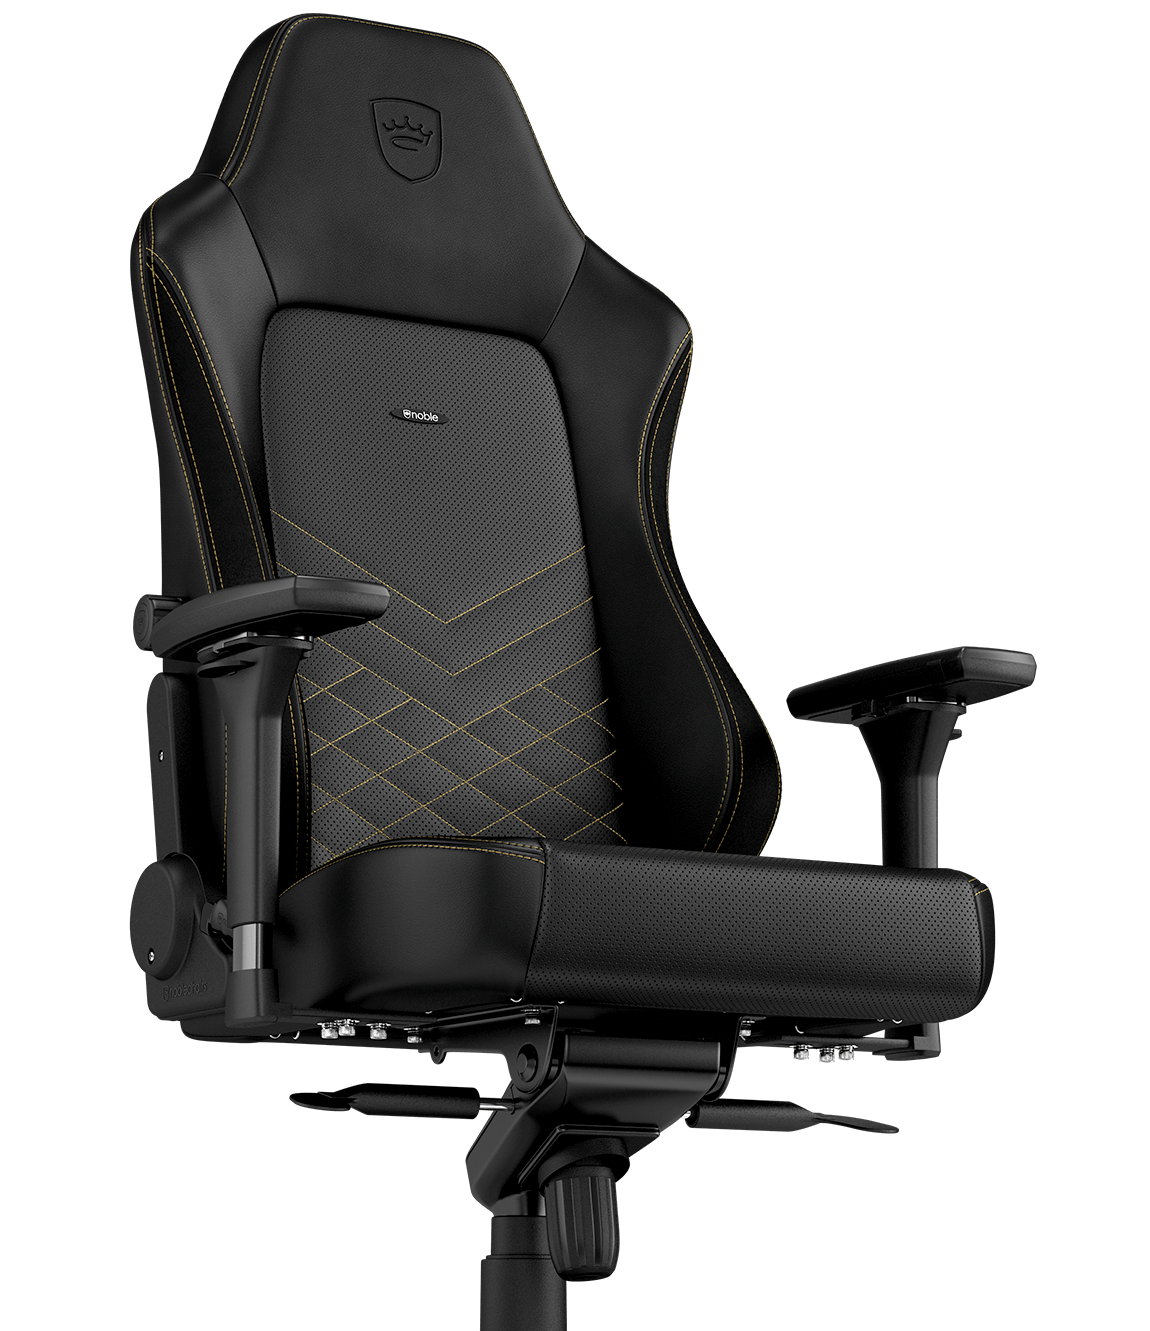 Groovy Noblechairs The Gaming Chair Evolution Pdpeps Interior Chair Design Pdpepsorg